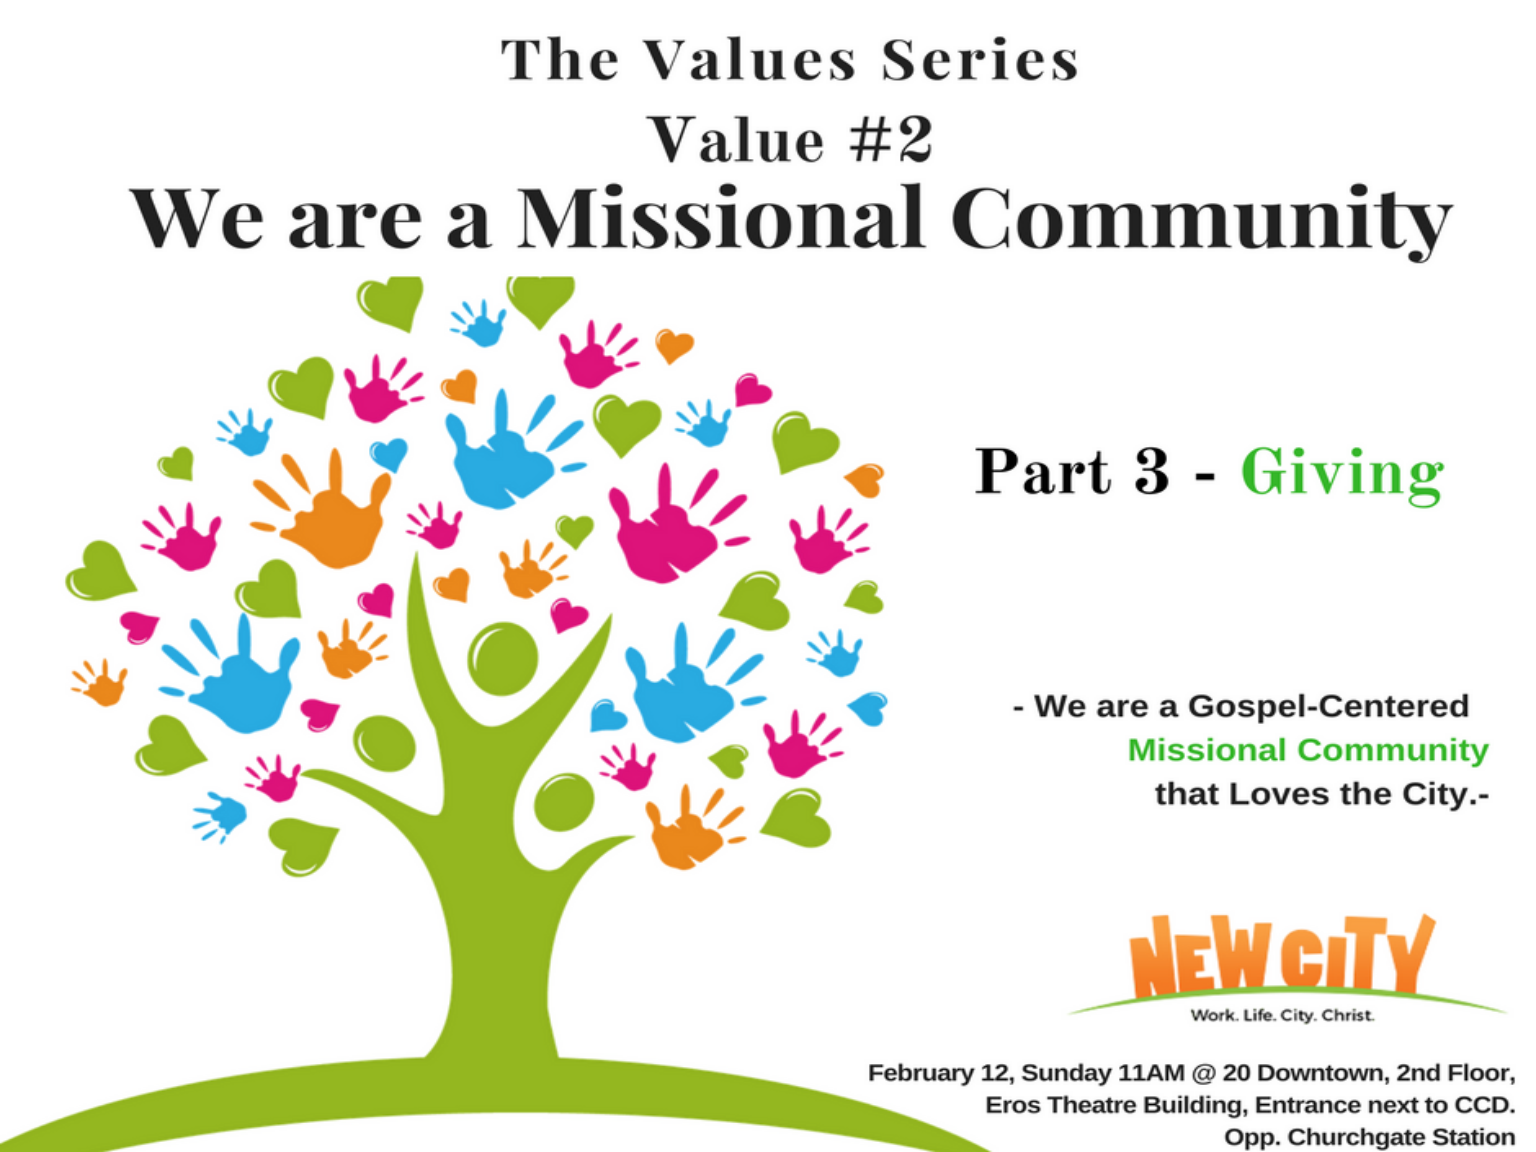 We are Missional Community (Part 3) Image